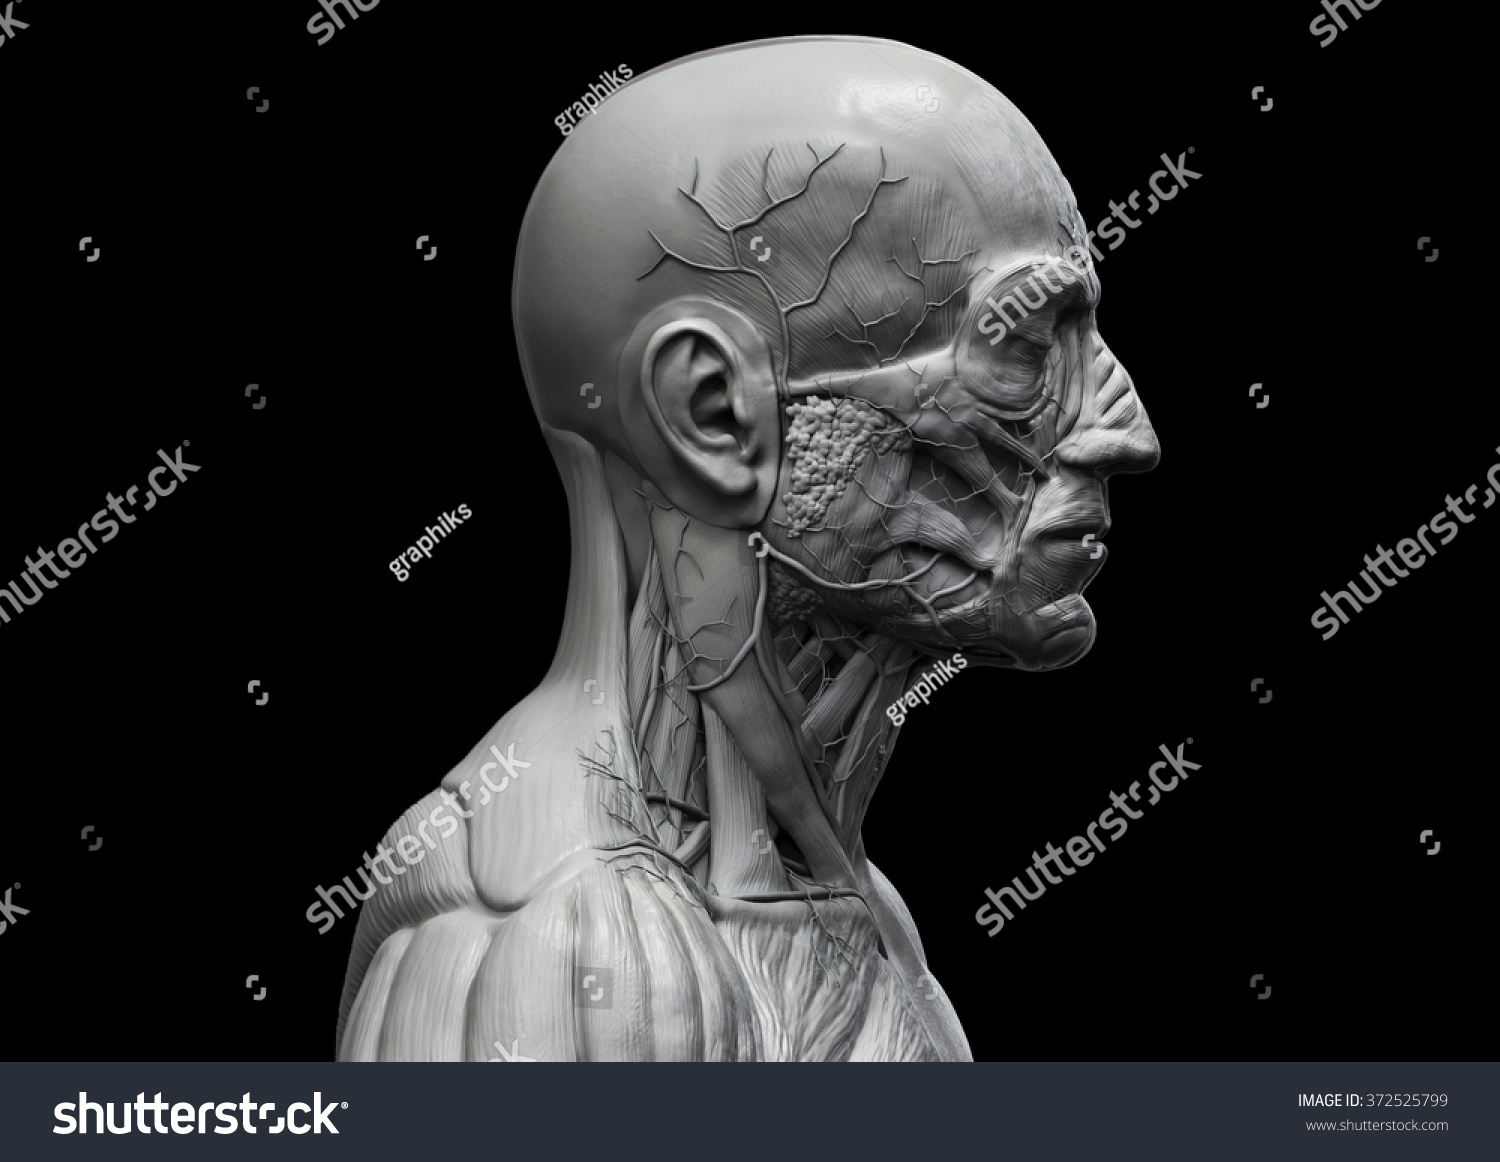 Royalty Free Stock Illustration Of Human Anatomy Muscle Anatomy Face